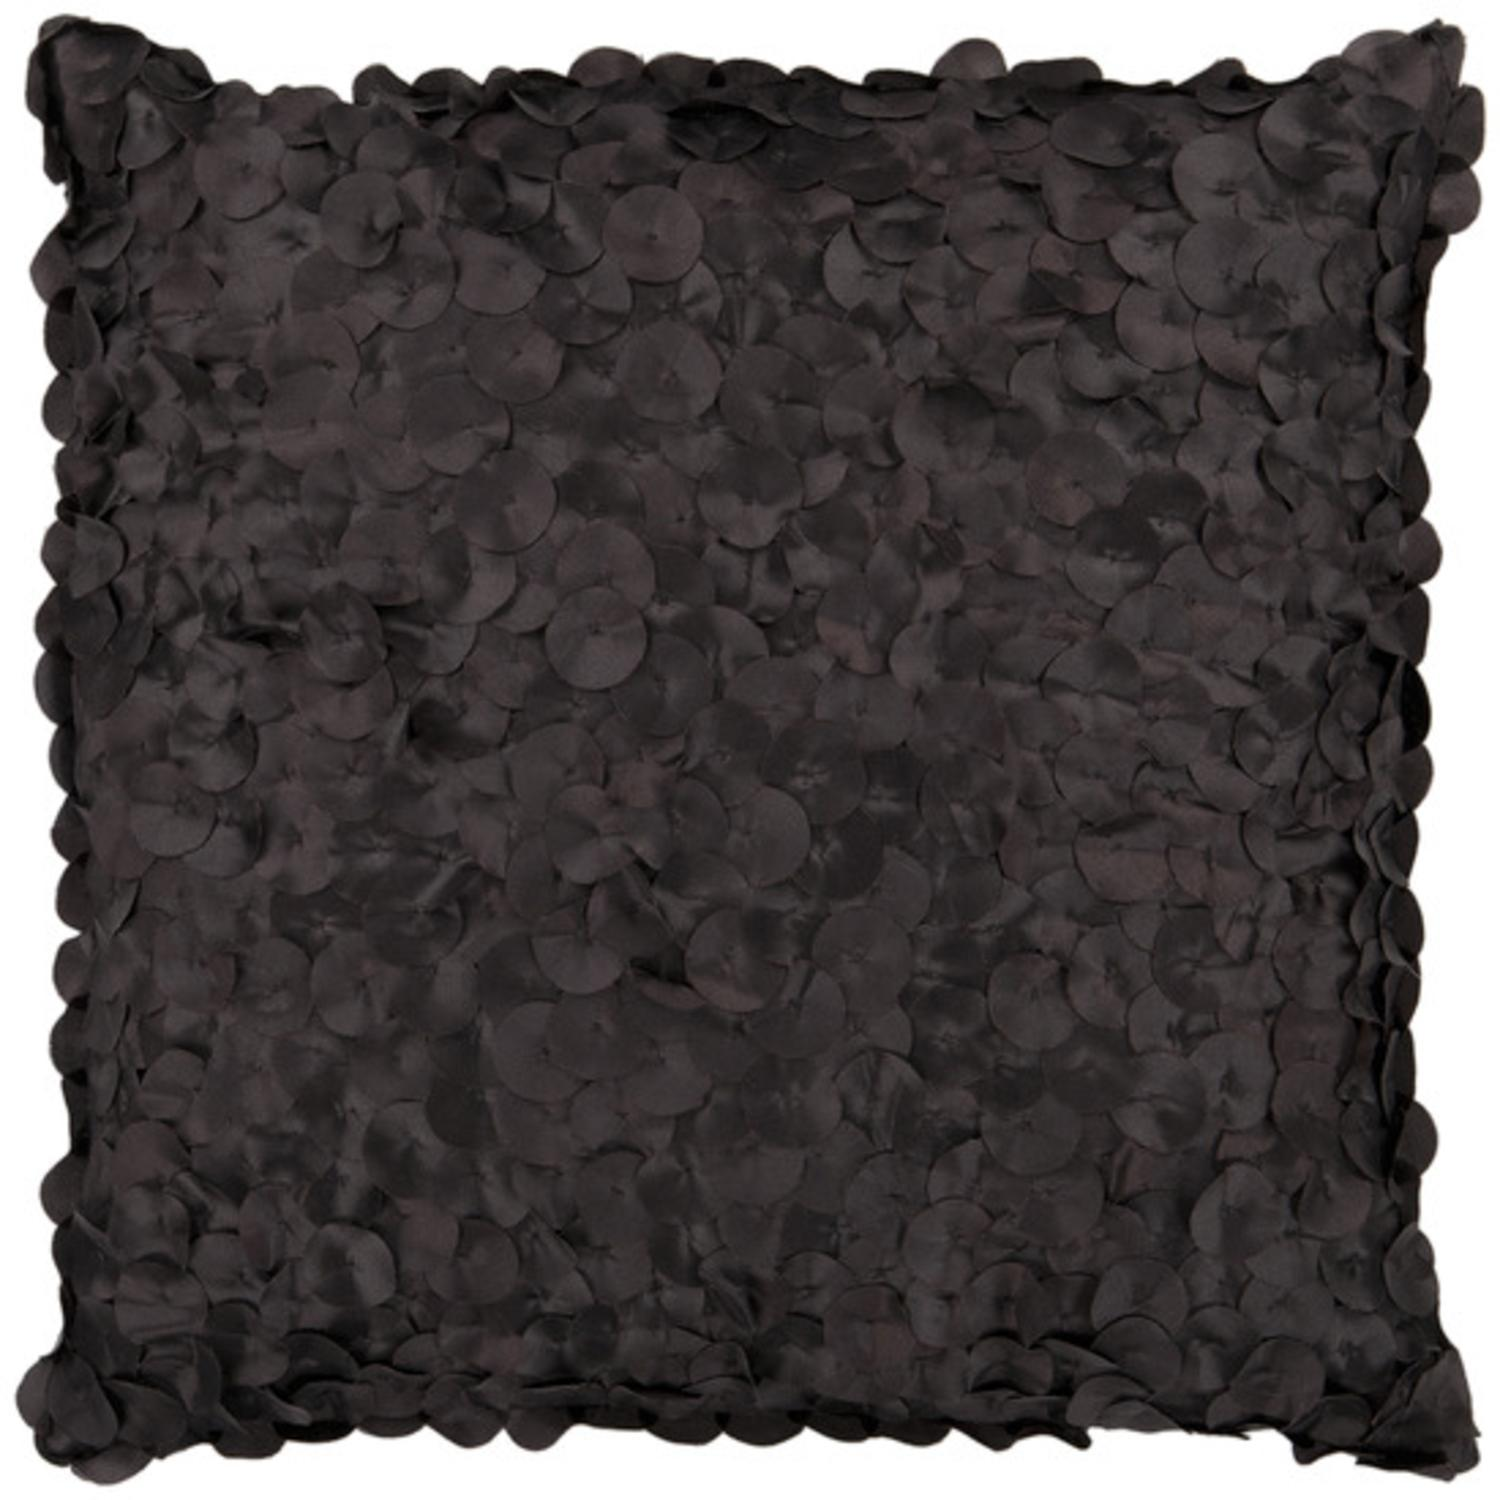 "22"" Cola Black Shimmering Satin Rondelle Decorative Throw Pillow"